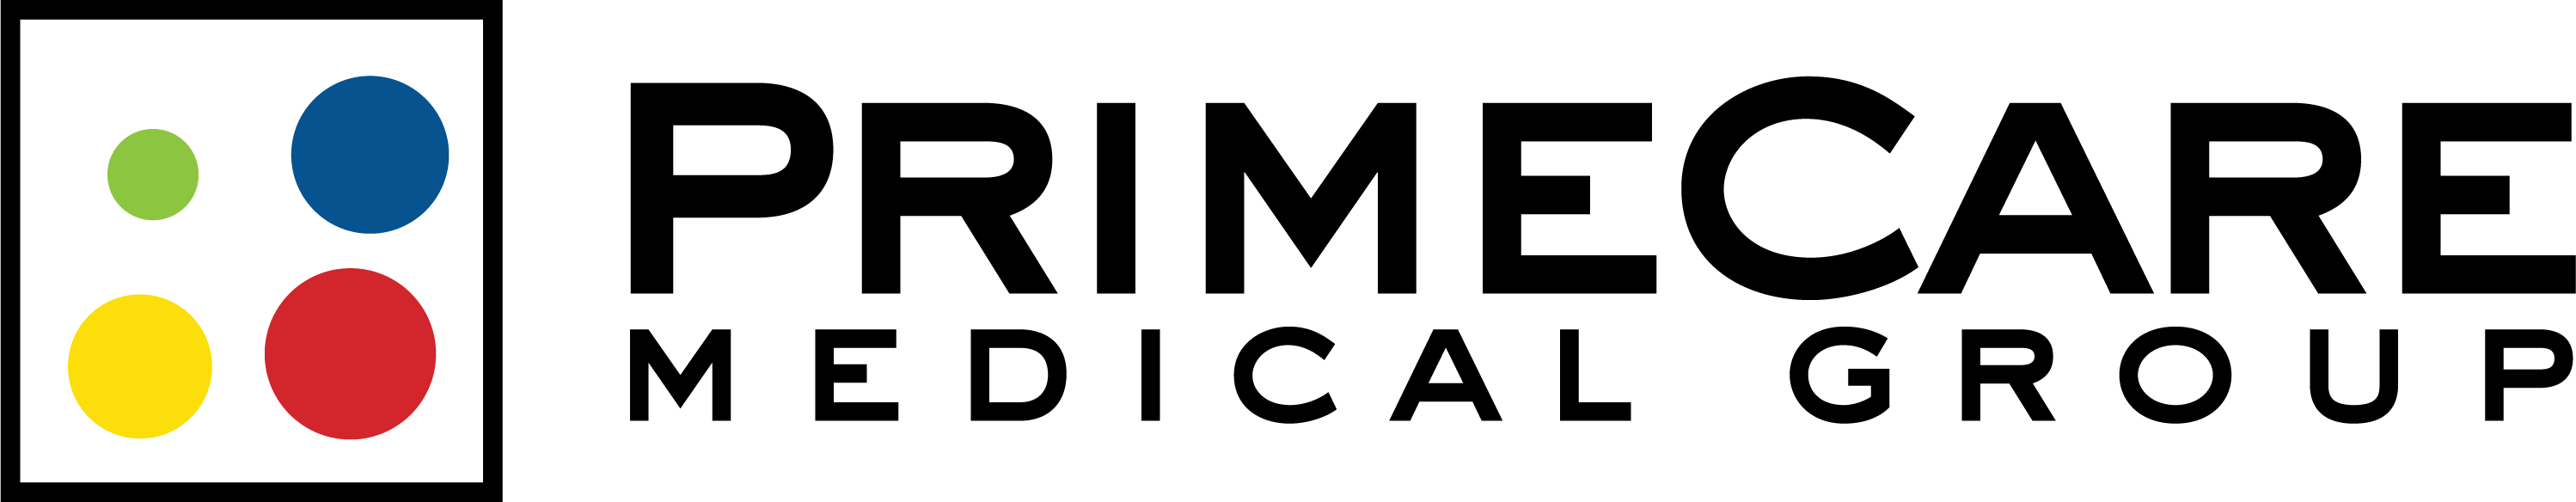 PrimeCare Medical Group